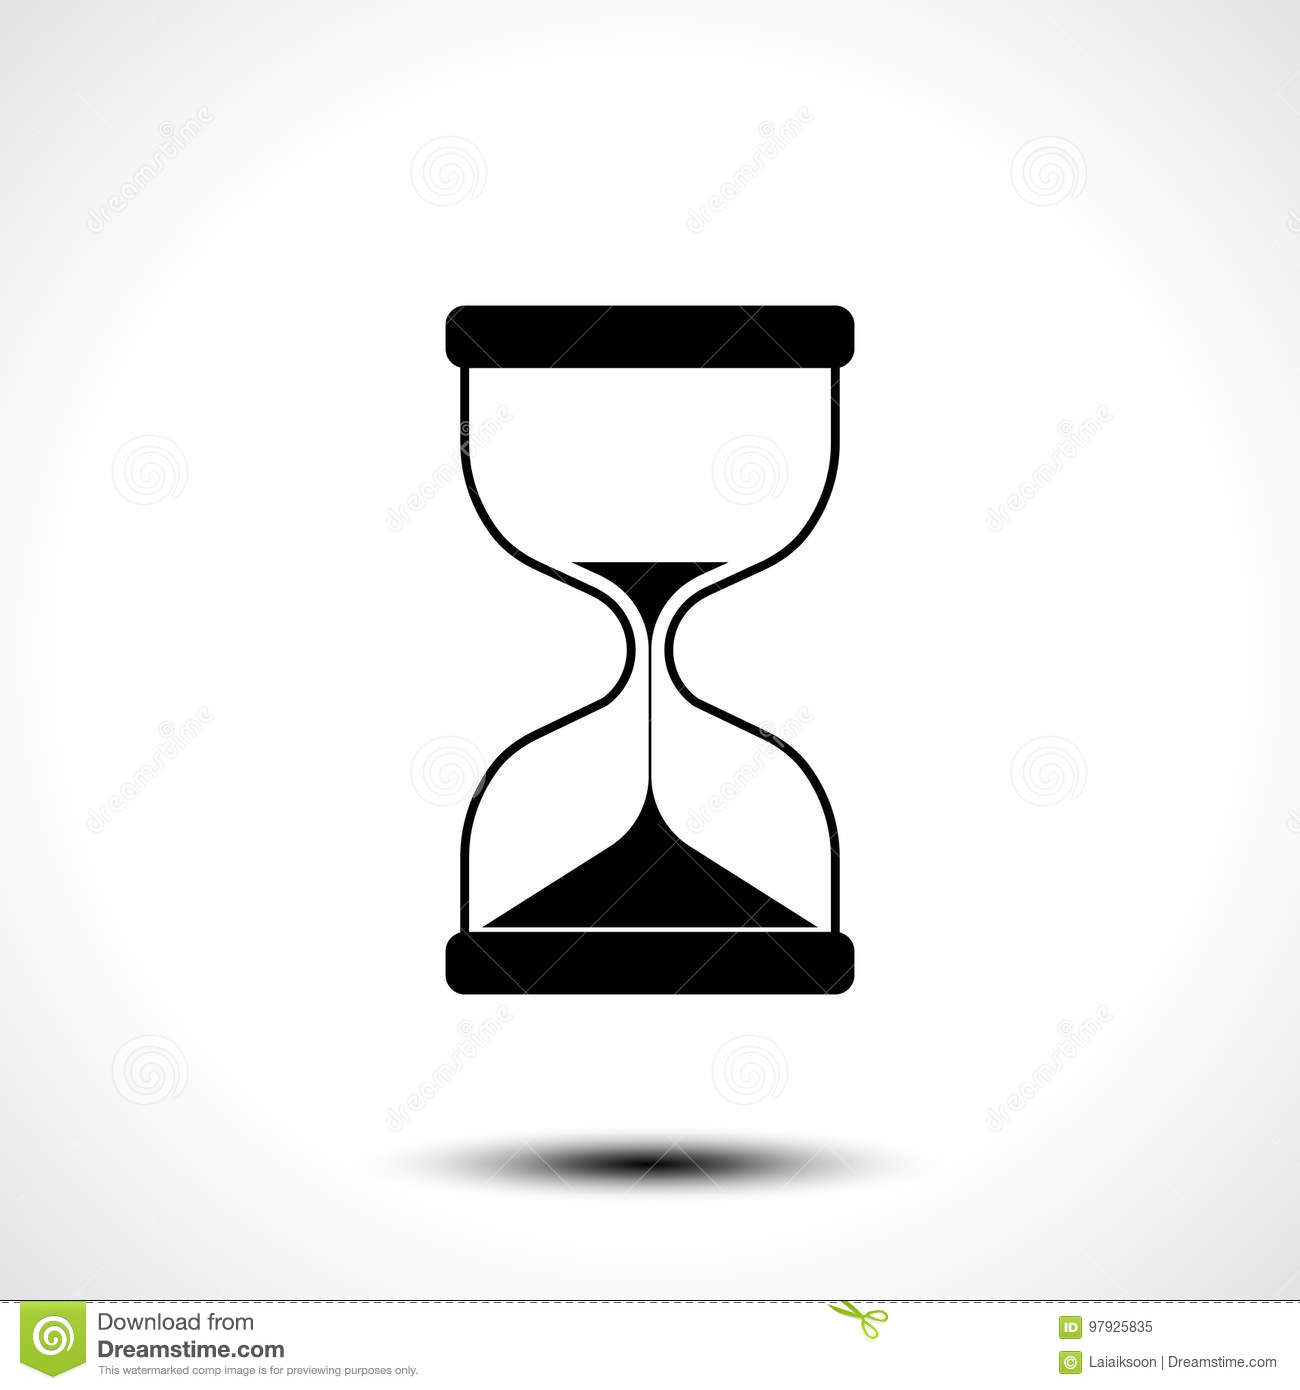 Sand hourglass icon isolated on white background